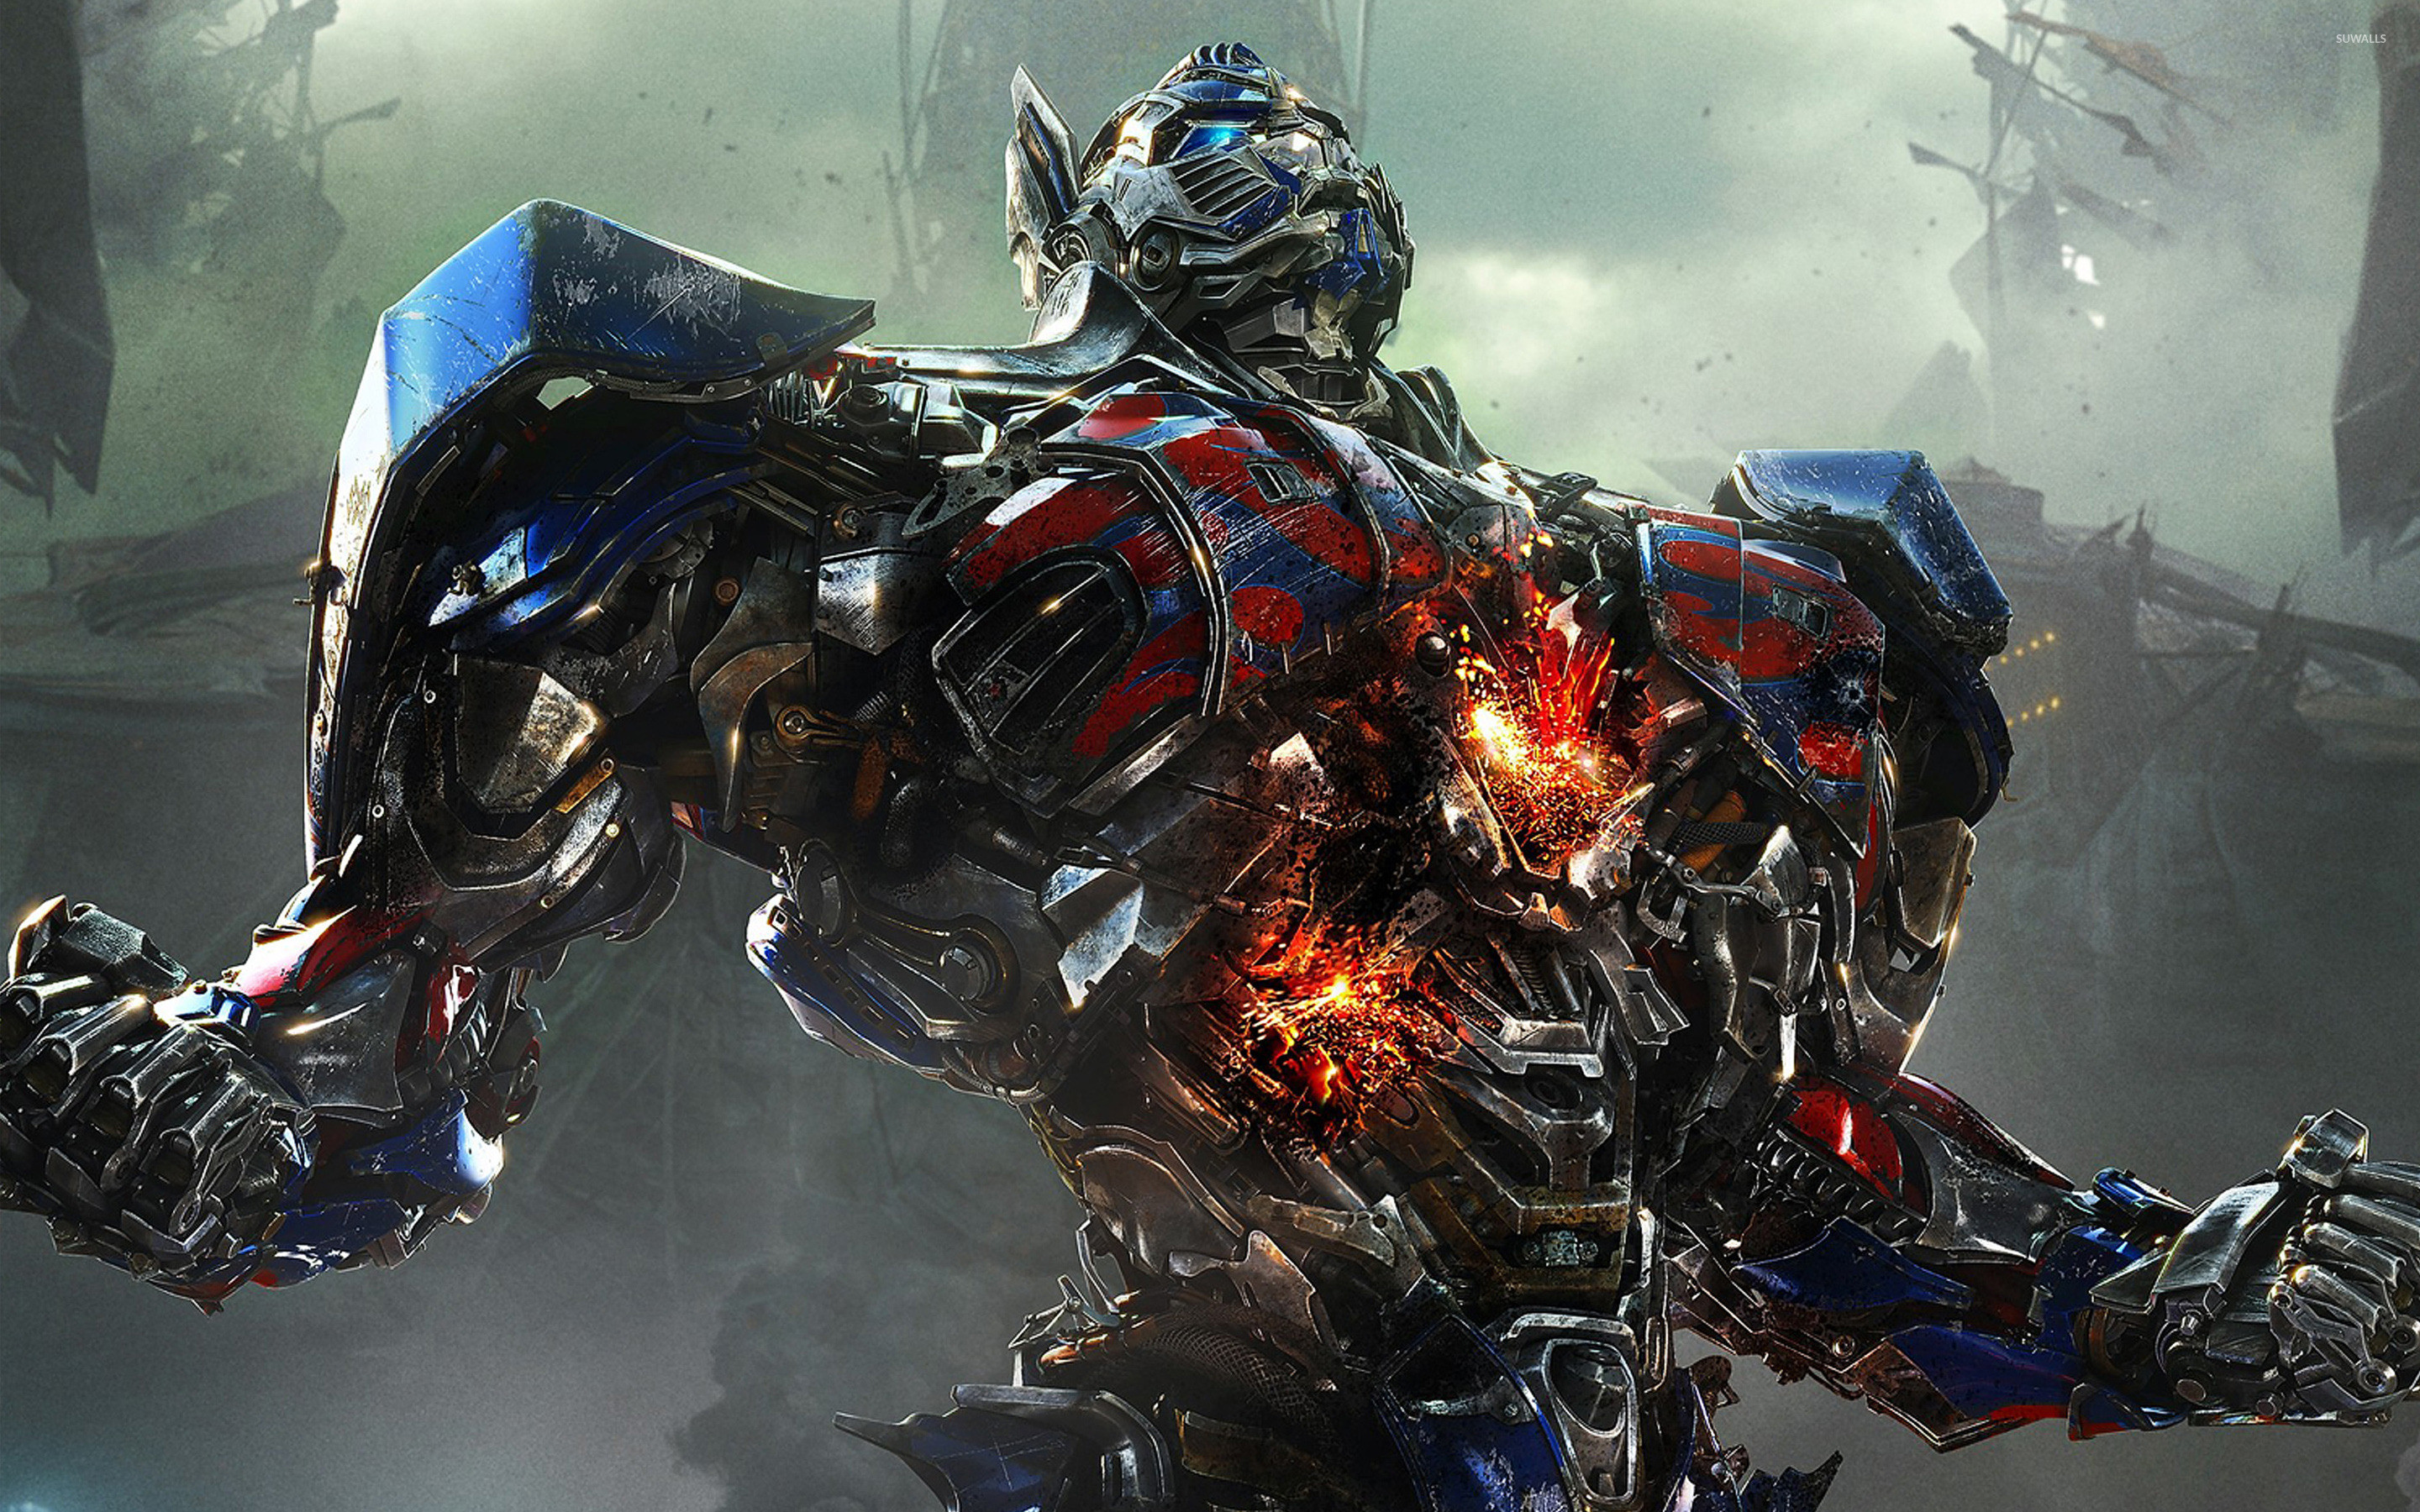 2880x1800 Optimus Prime - Transformers: Age of Extinction [2] wallpaper